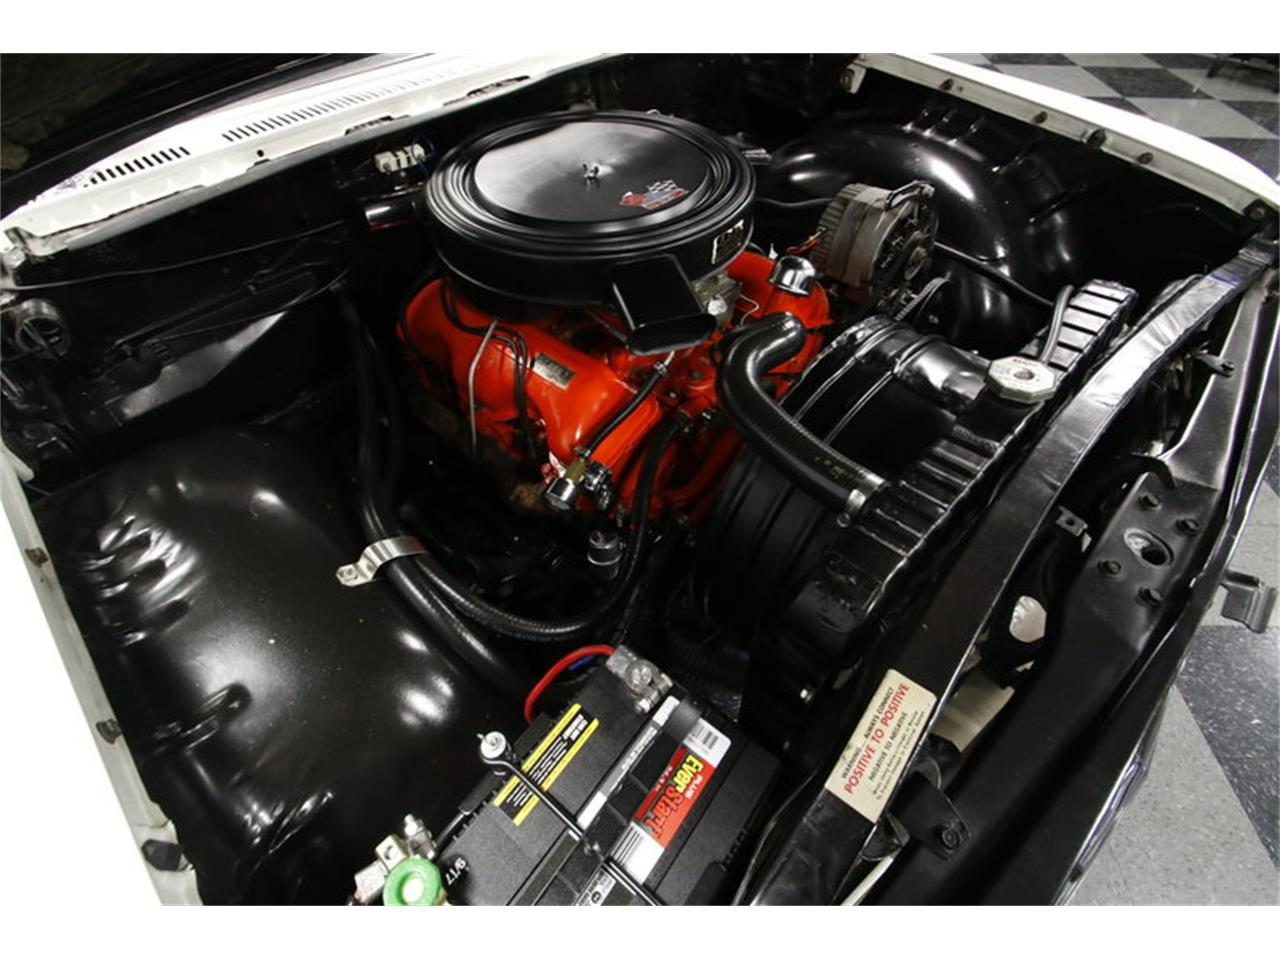 Large Picture of 1960 Chevrolet Impala located in North Carolina - $36,995.00 - MAOZ